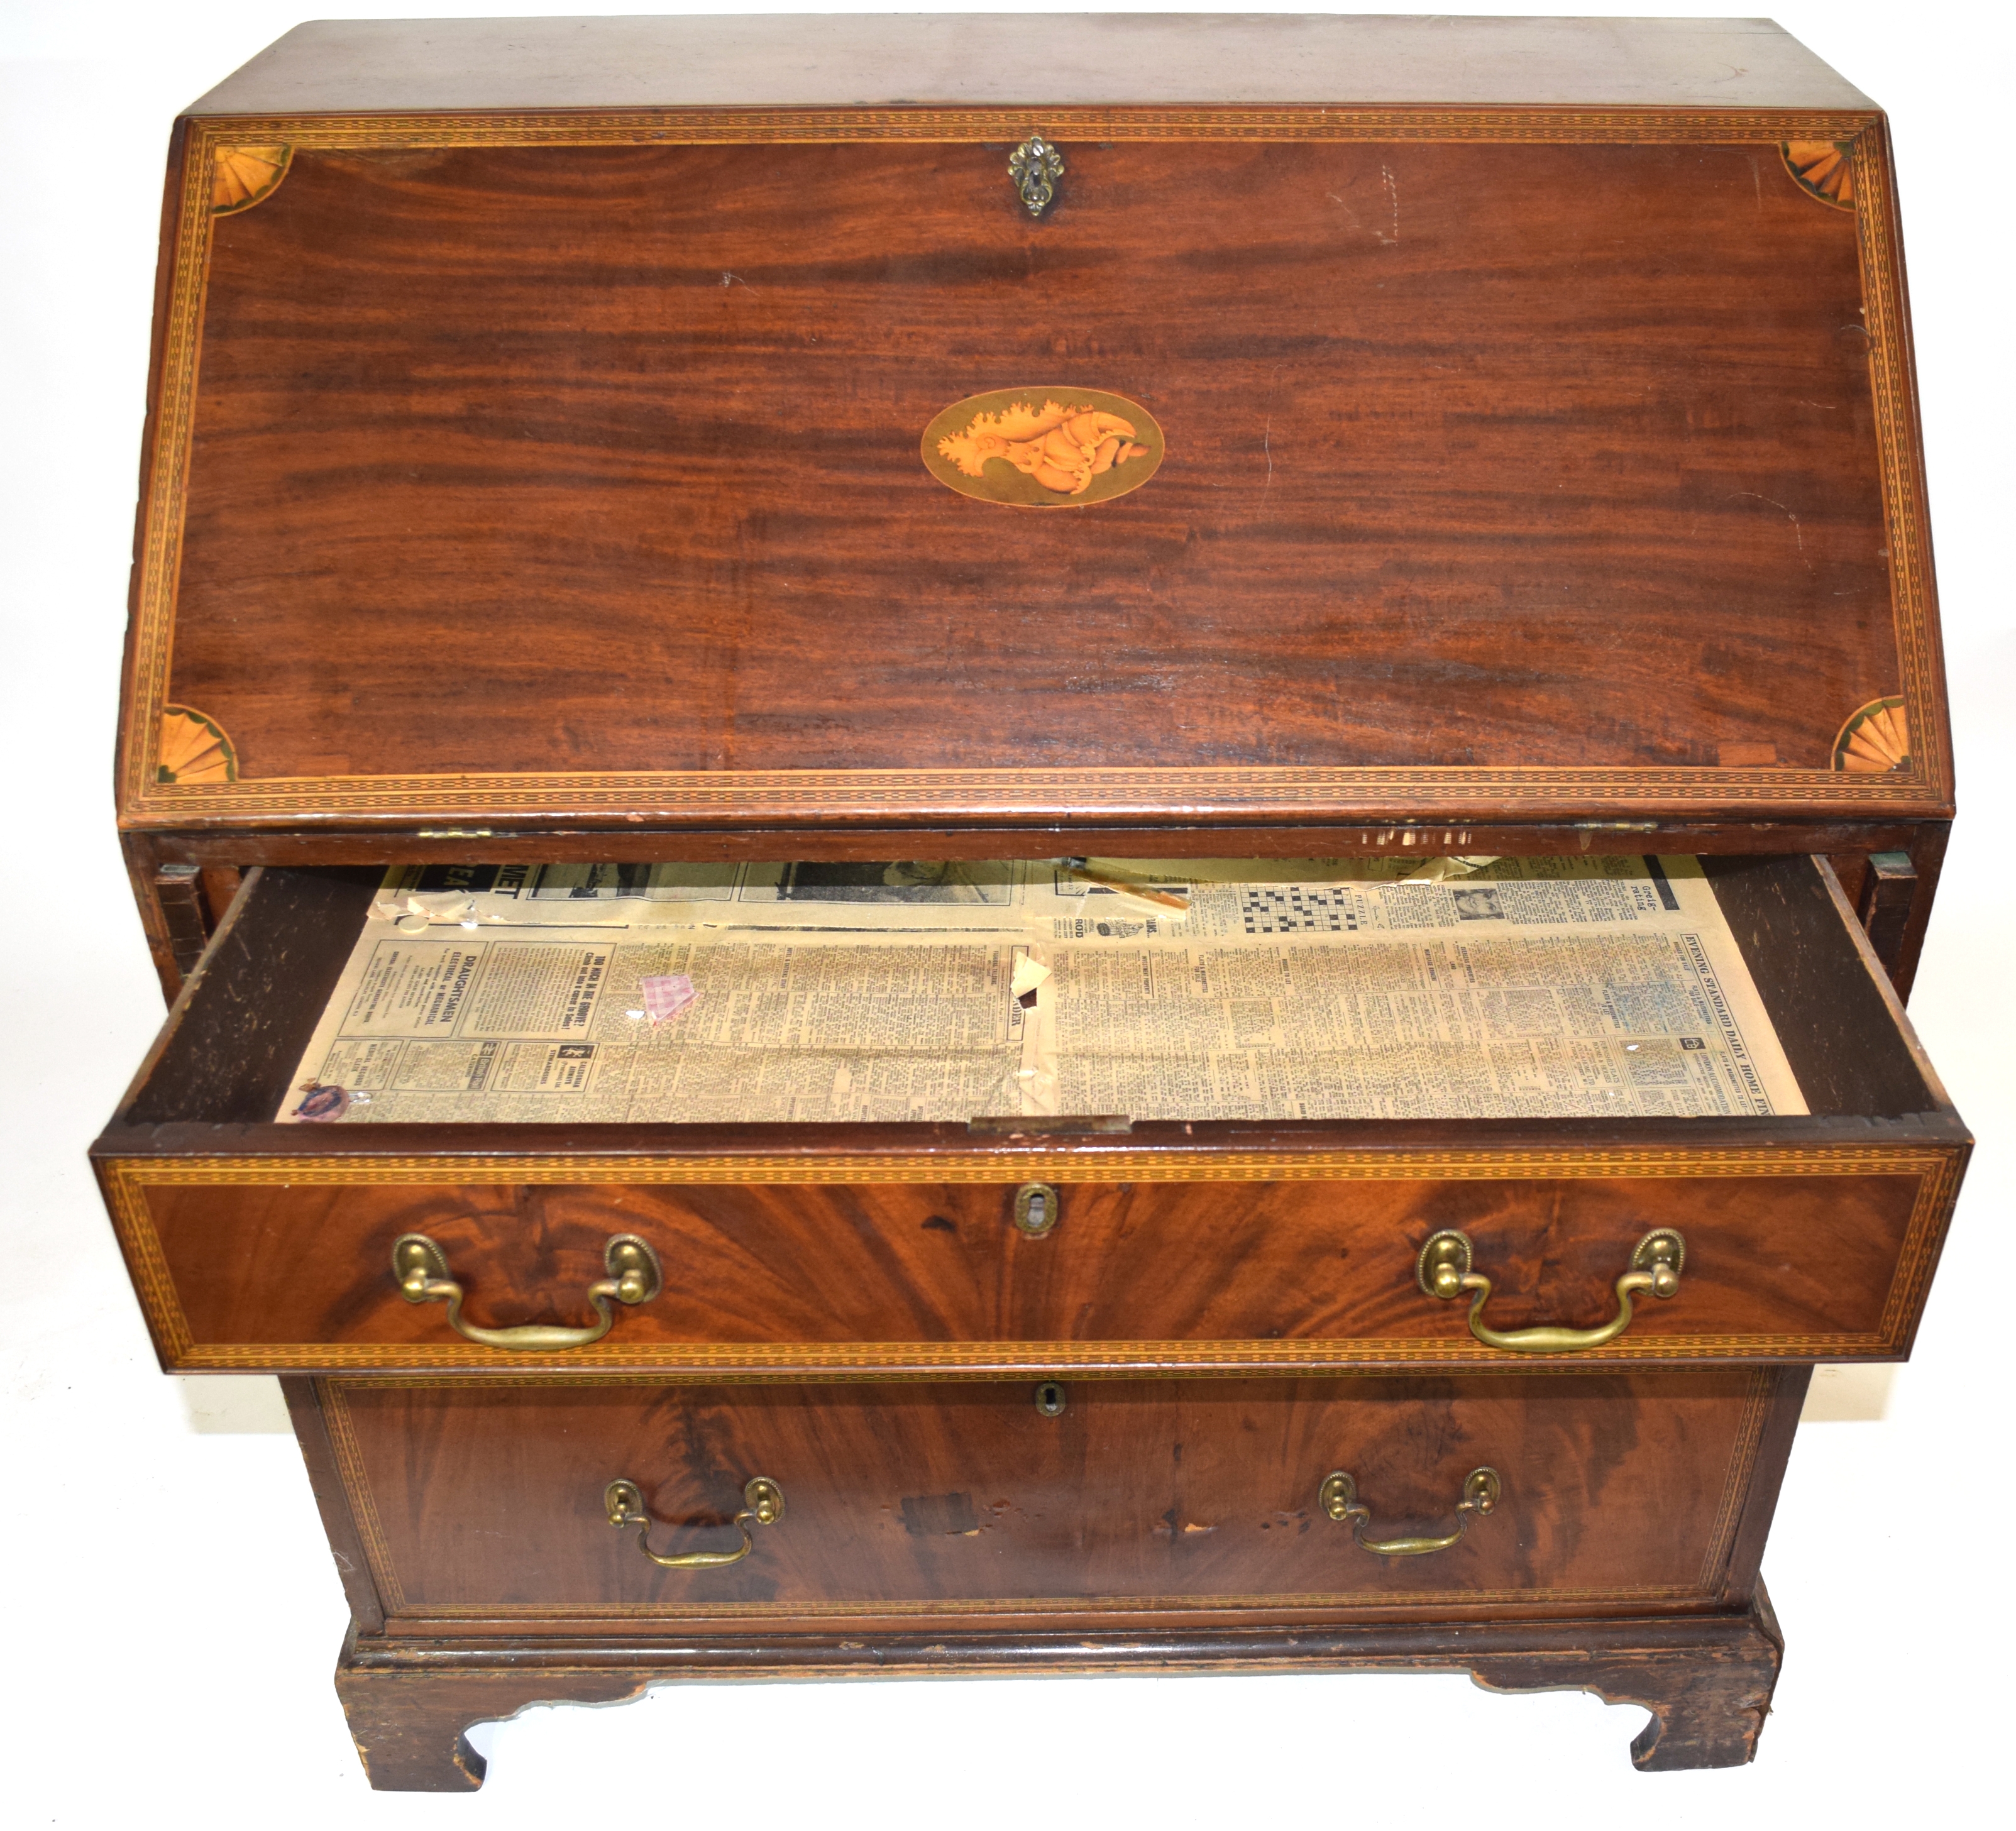 19th century fall front bureau with inlaid decoration throughout, raised on bracket feet with fitted - Image 3 of 5